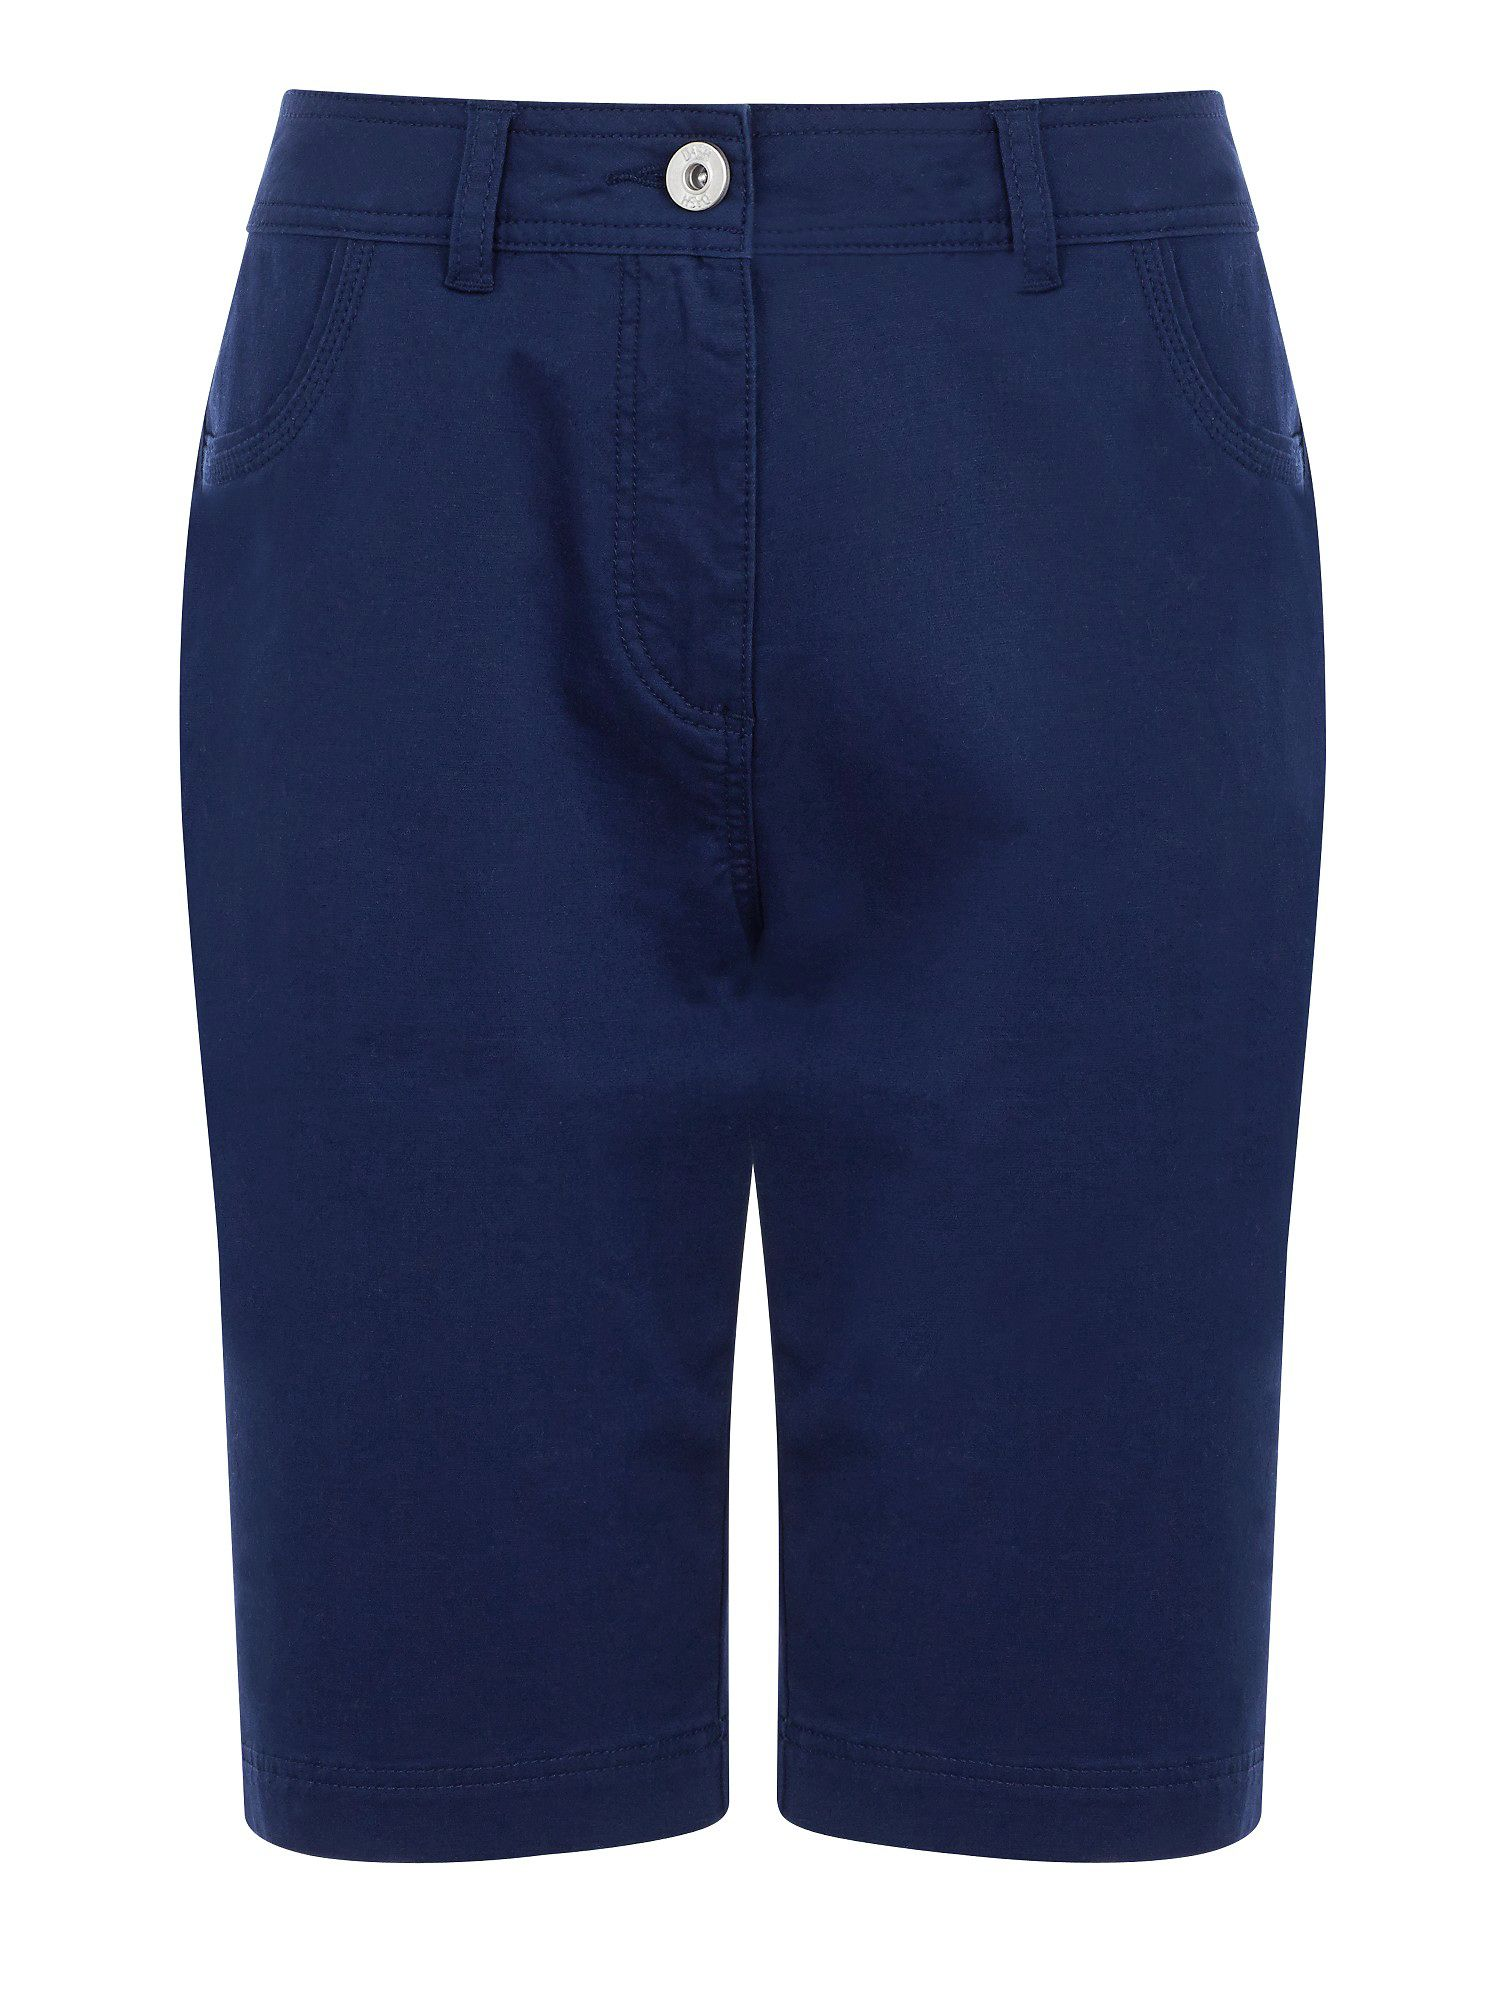 Navy cotton twill city short